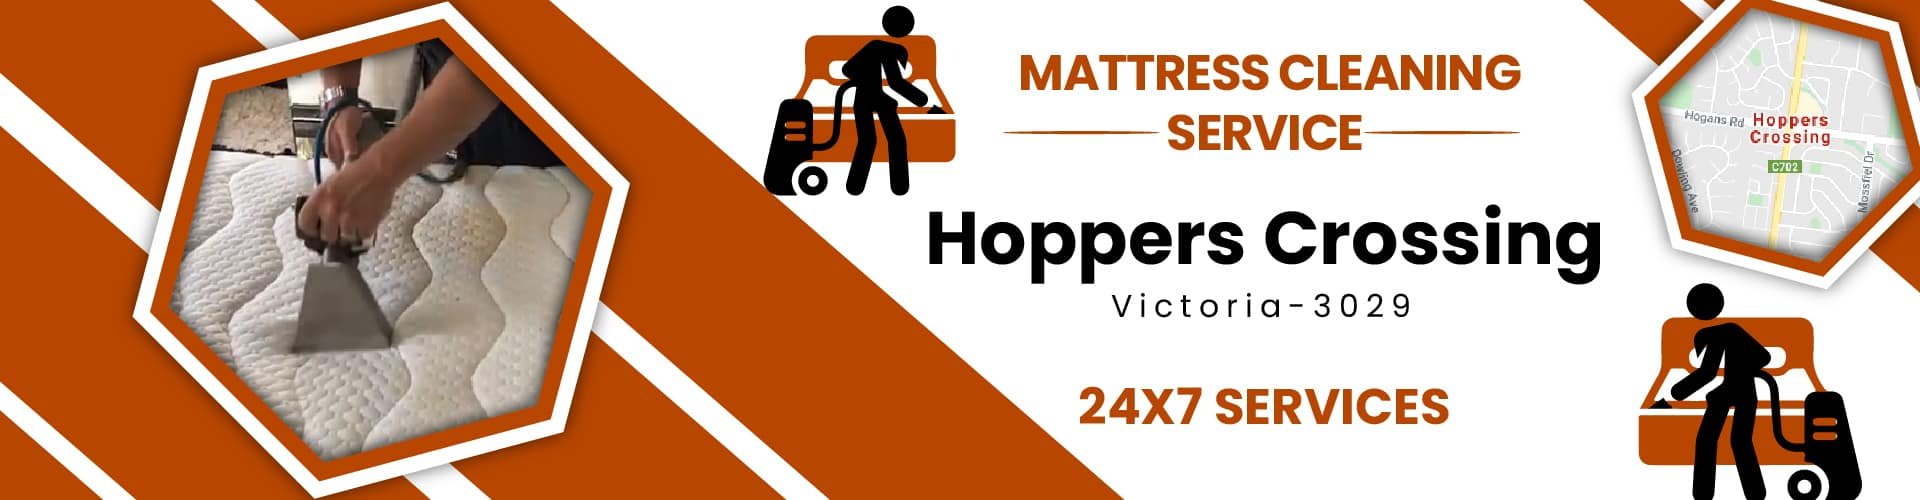 Mattress Cleaning Hoppers Crossing